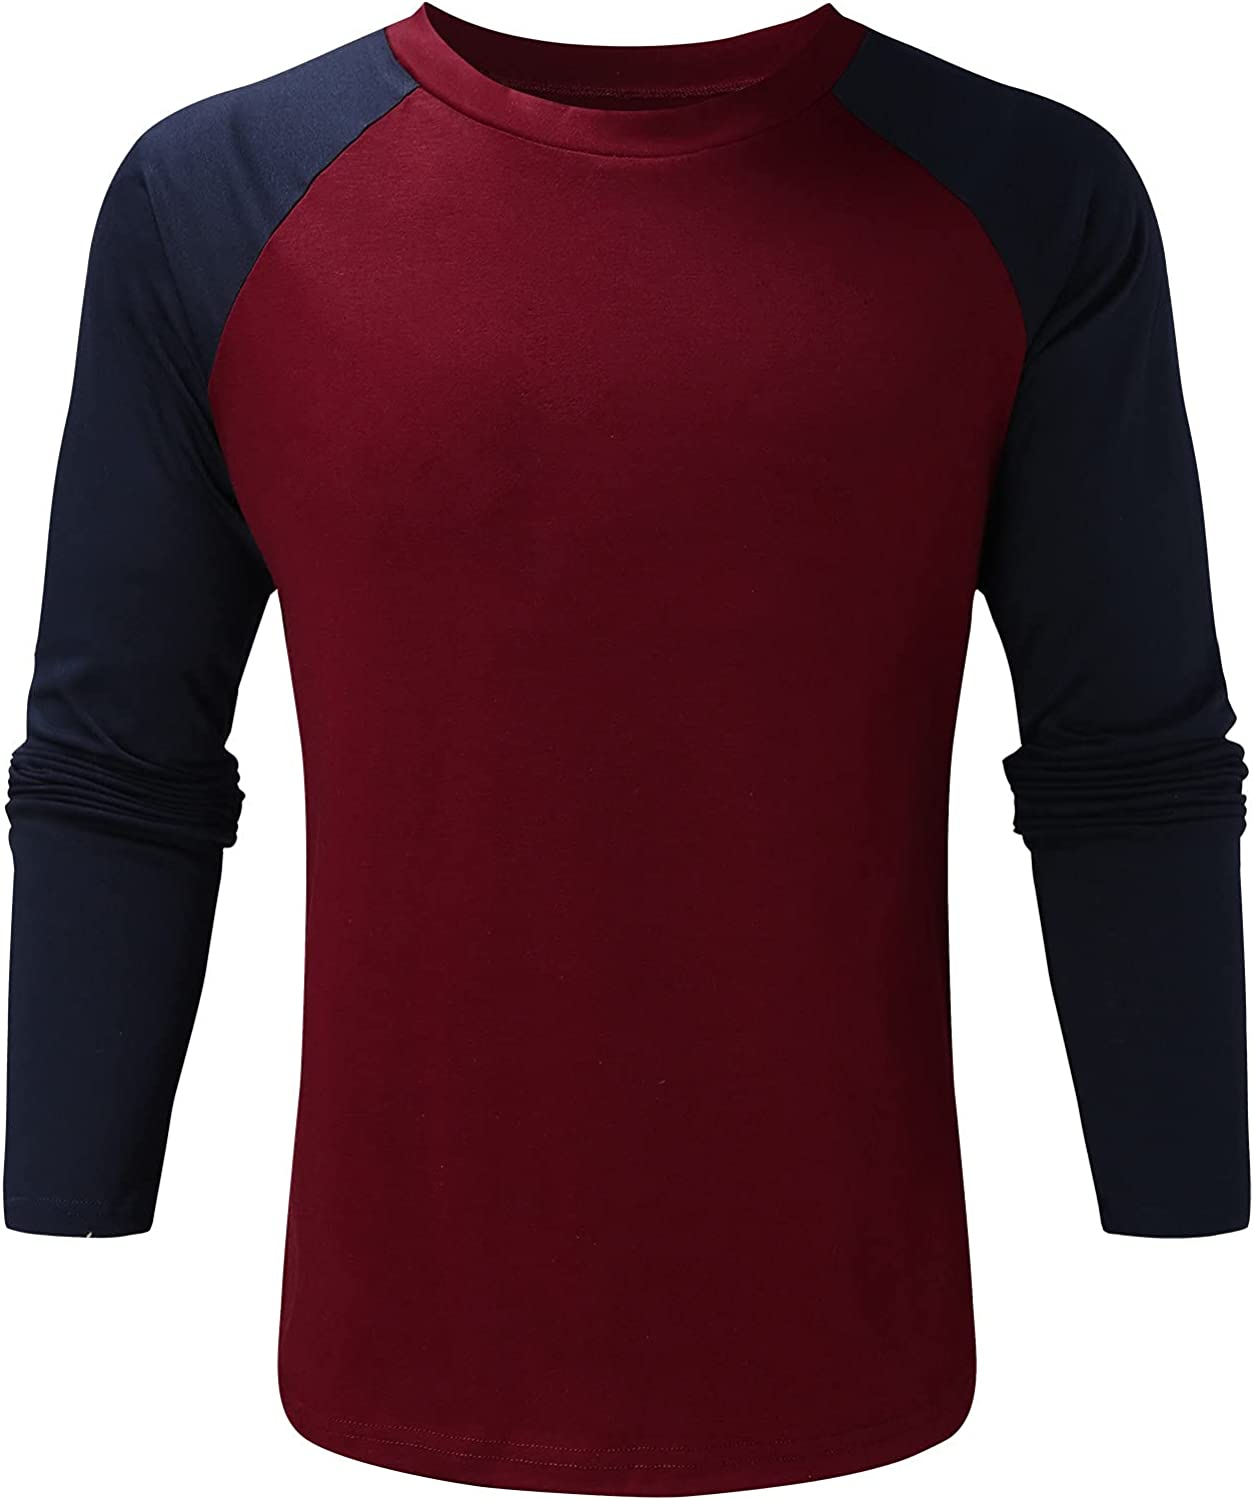 Bravetoshop Men's Long Sleeve T-Shirt Casual Slim Fit Crew Neck Patchwork Basic Pullover Tops